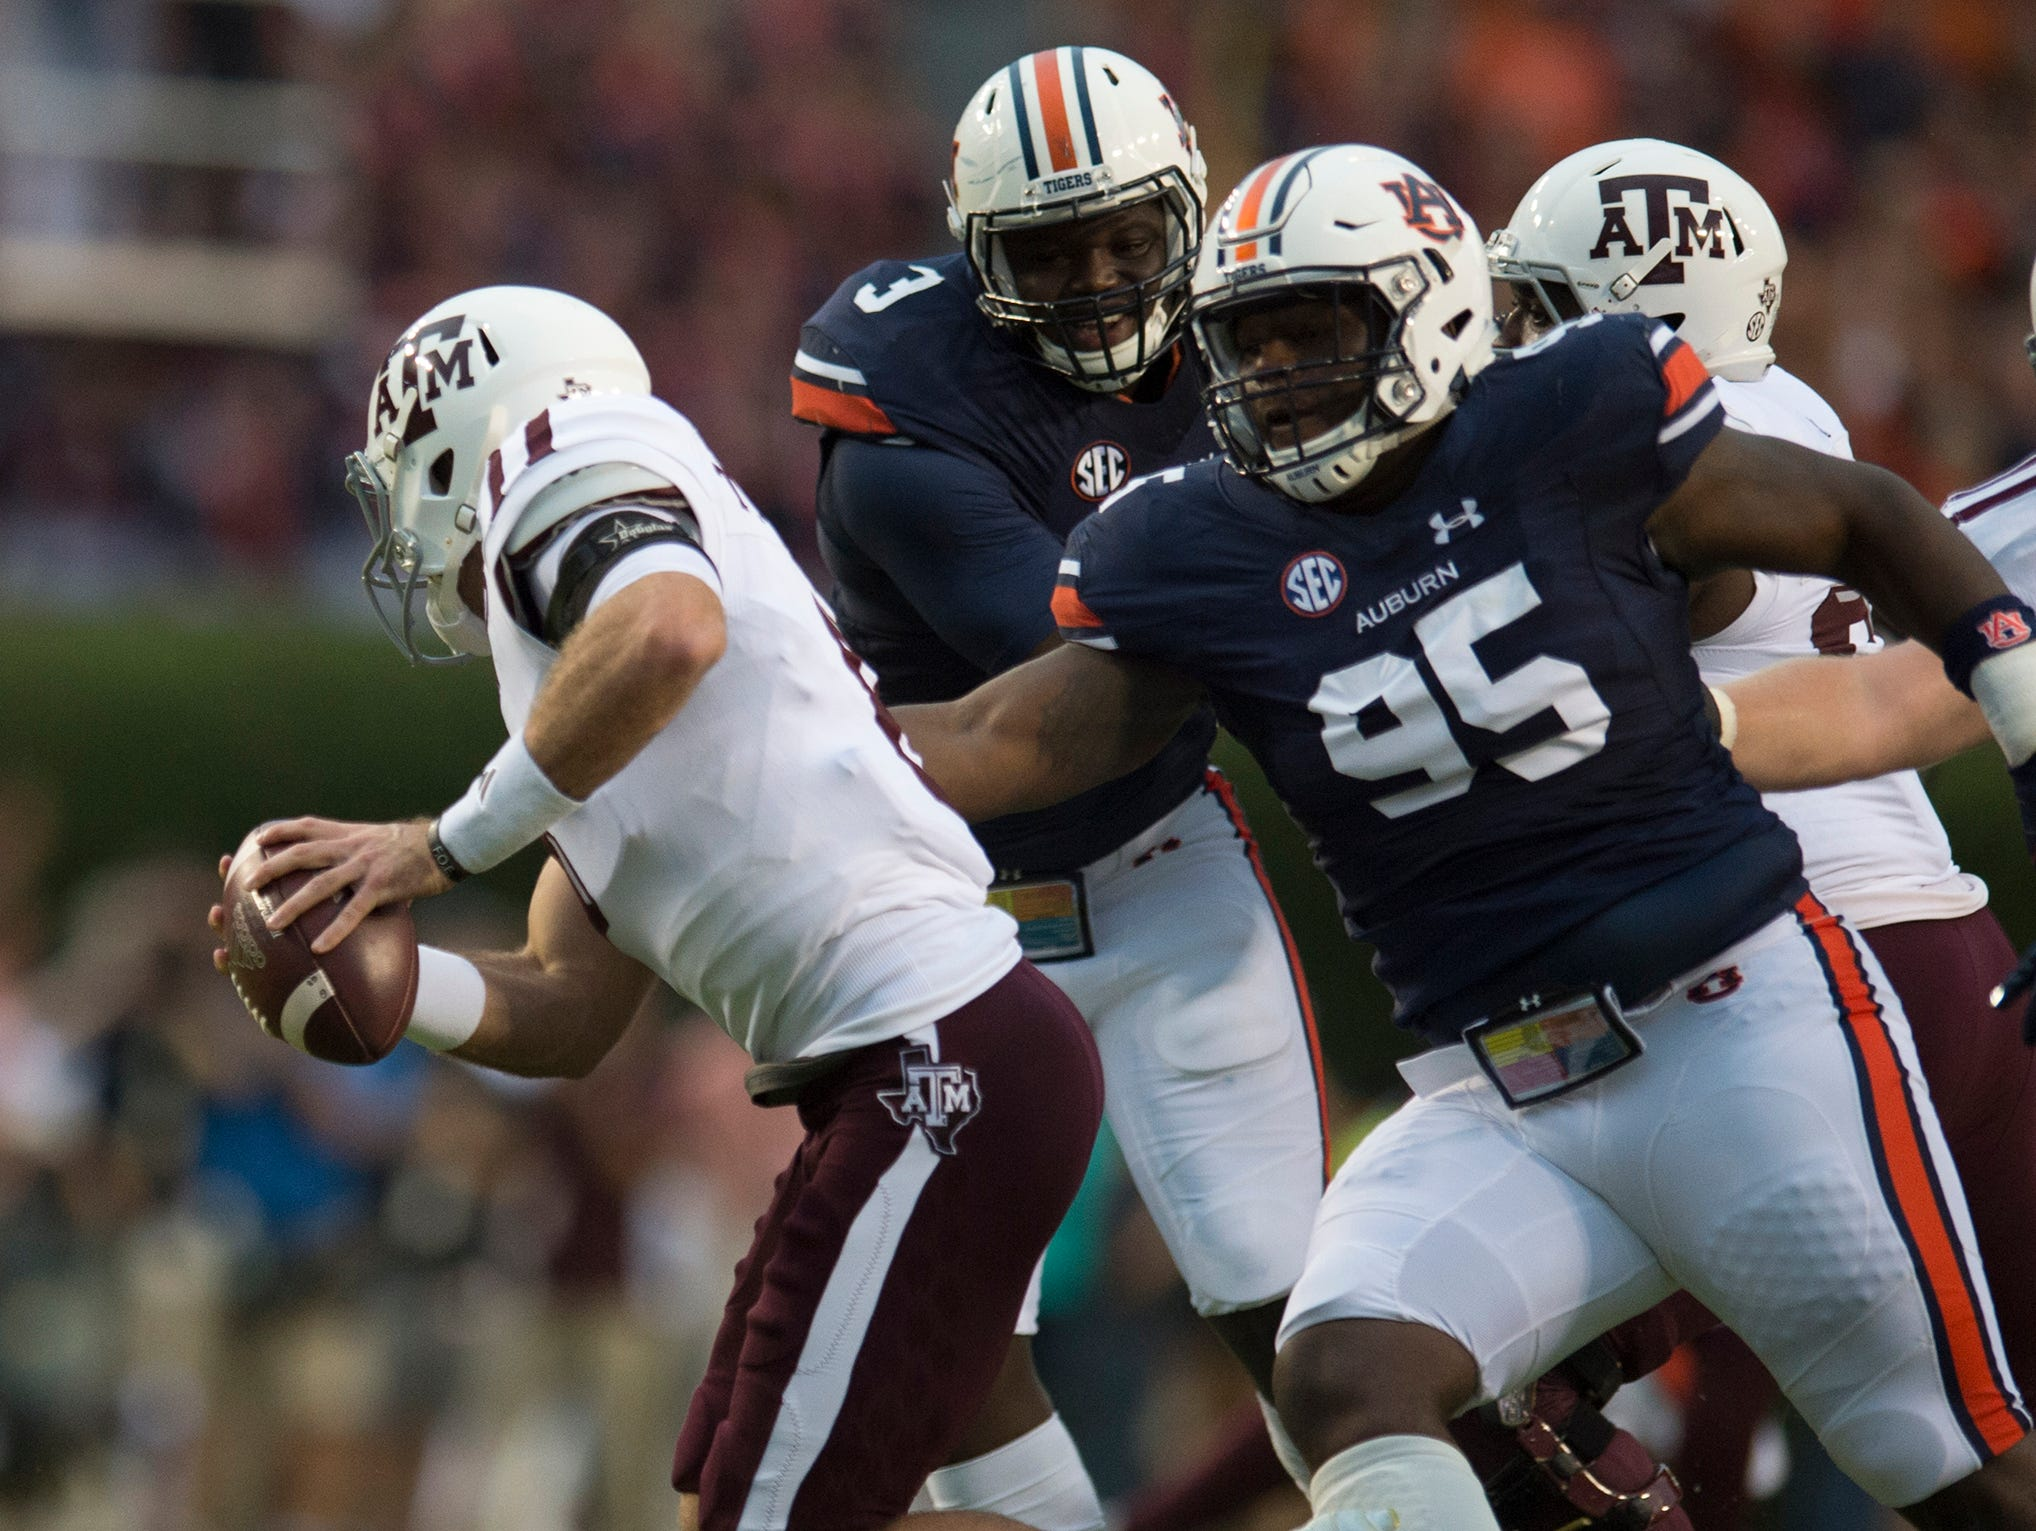 Auburn defensive lineman Dontavius Russell (95) attempts to tackle Texas A&M quarterback Trevor Knight (8) runs away from him during the Auburn vs. Texas A&M NCAA football game on Saturday, Sept. 17, 2016, at Jordan Hare Stadium in Auburn, Ala. Albert Cesare / Advertiser